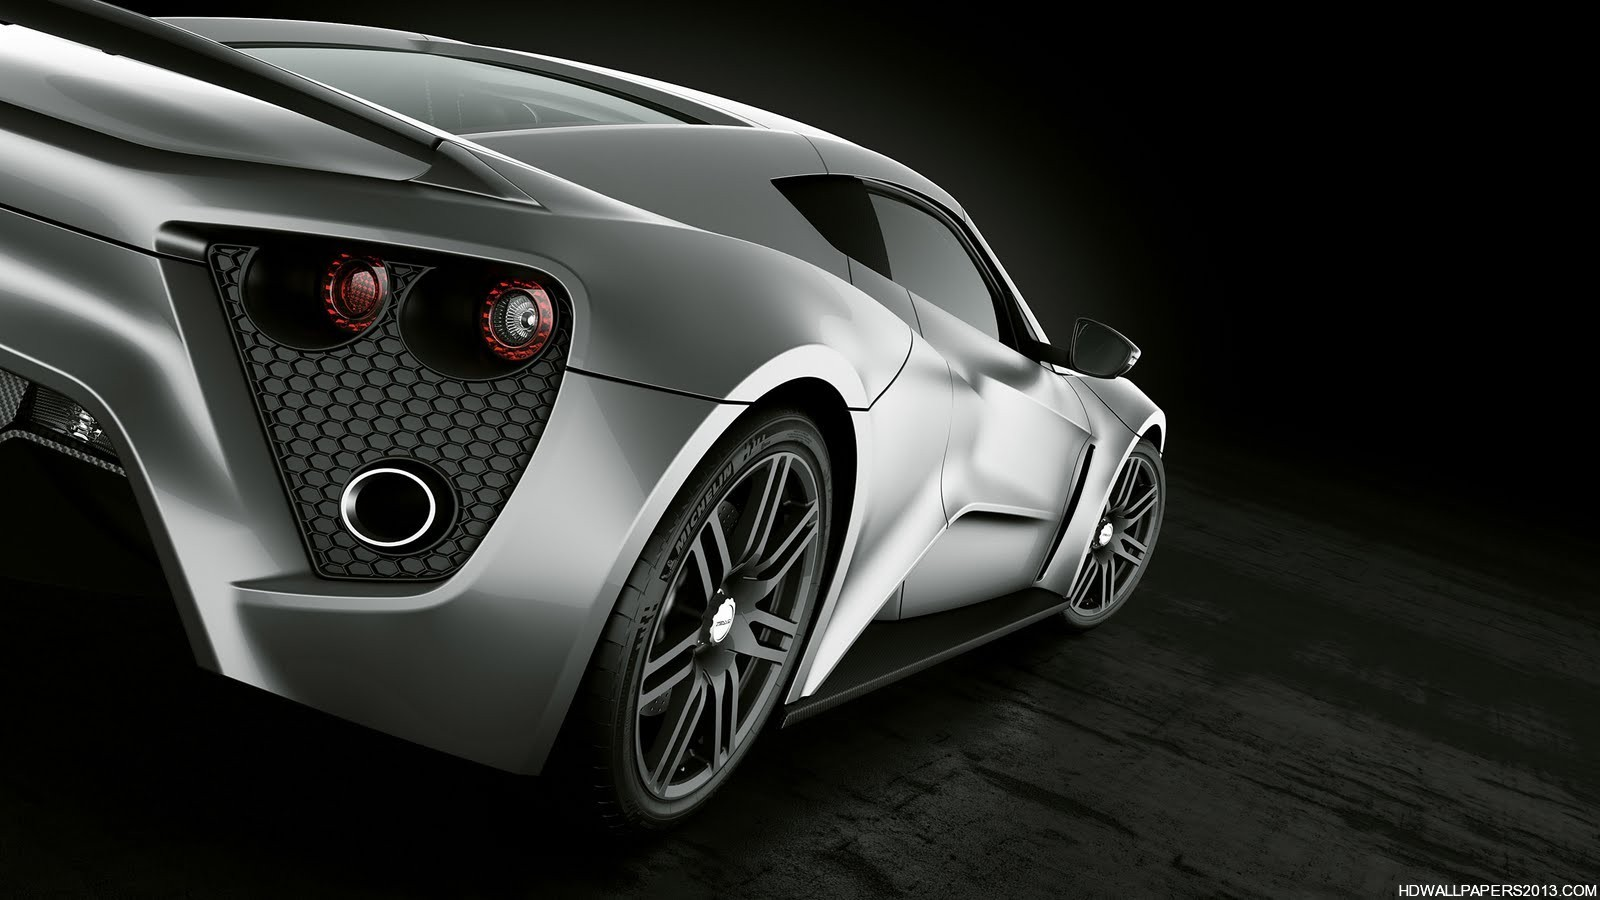 Best Car Wallpapers HD High Definition Wallpapers High